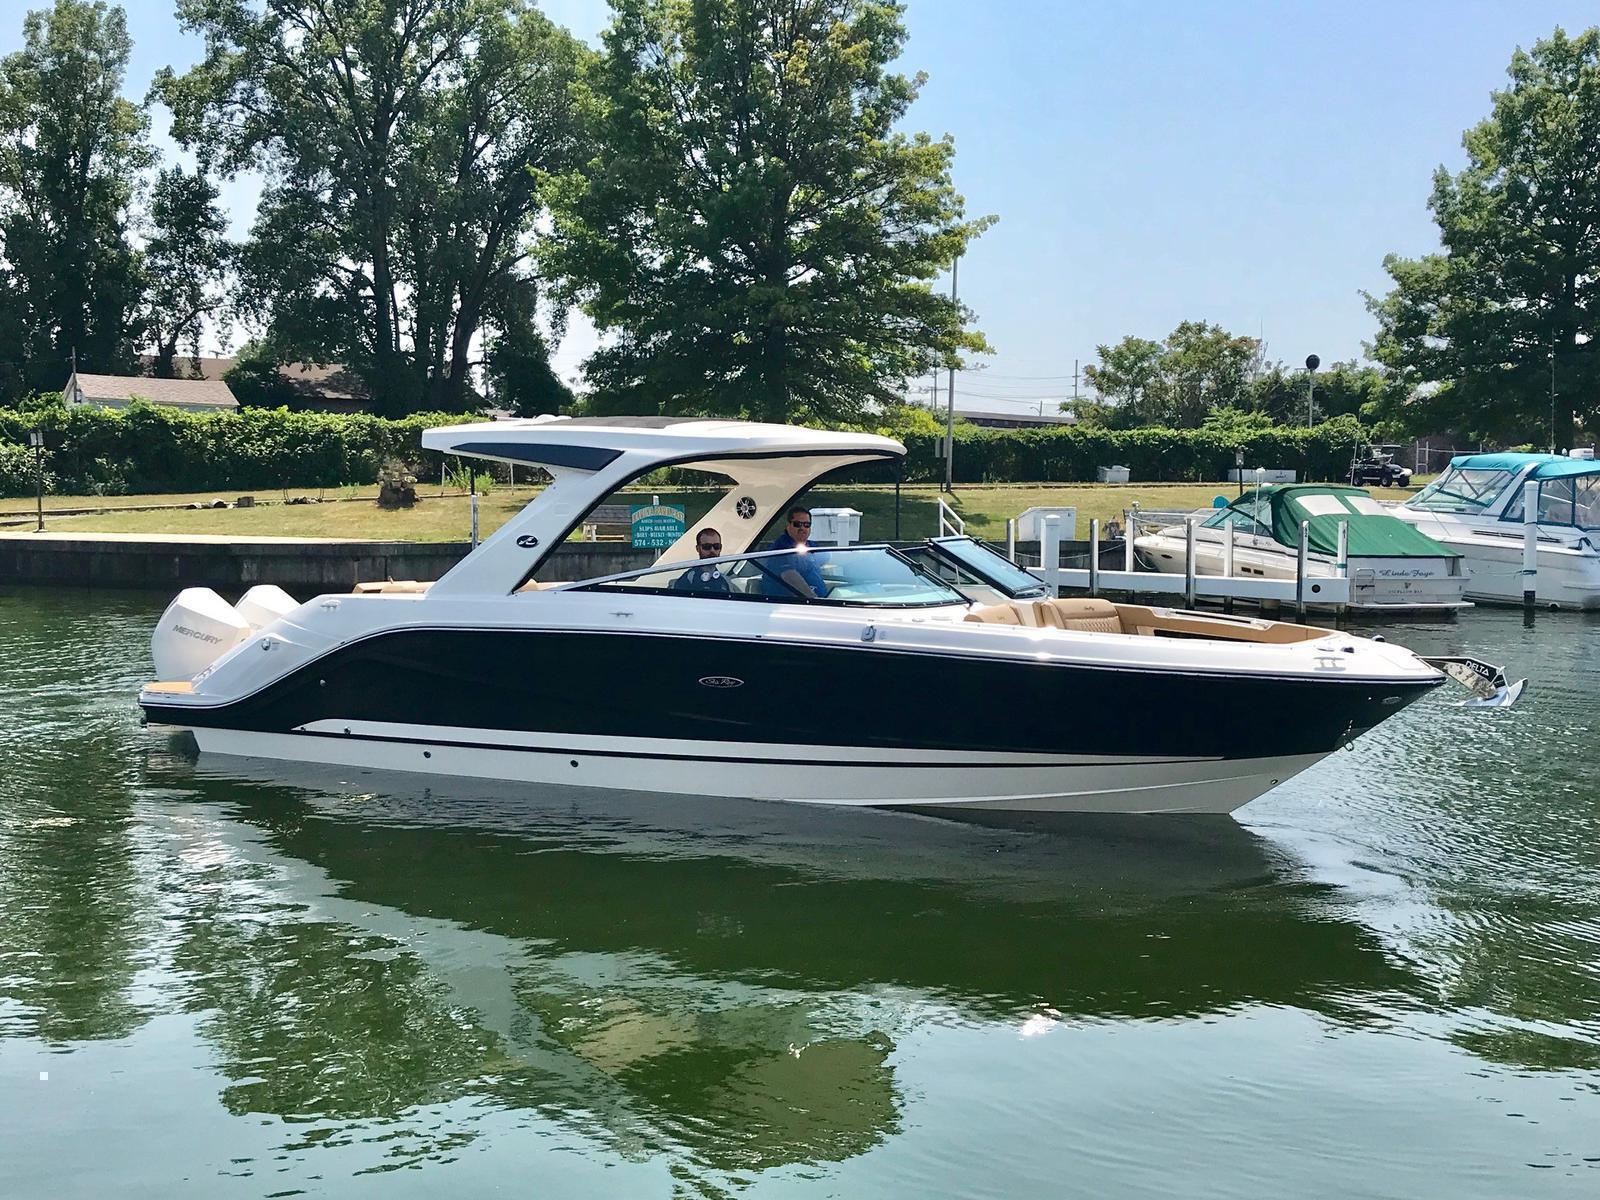 2019 Sea Ray boat for sale, model of the boat is SLX 310 & Image # 1 of 5